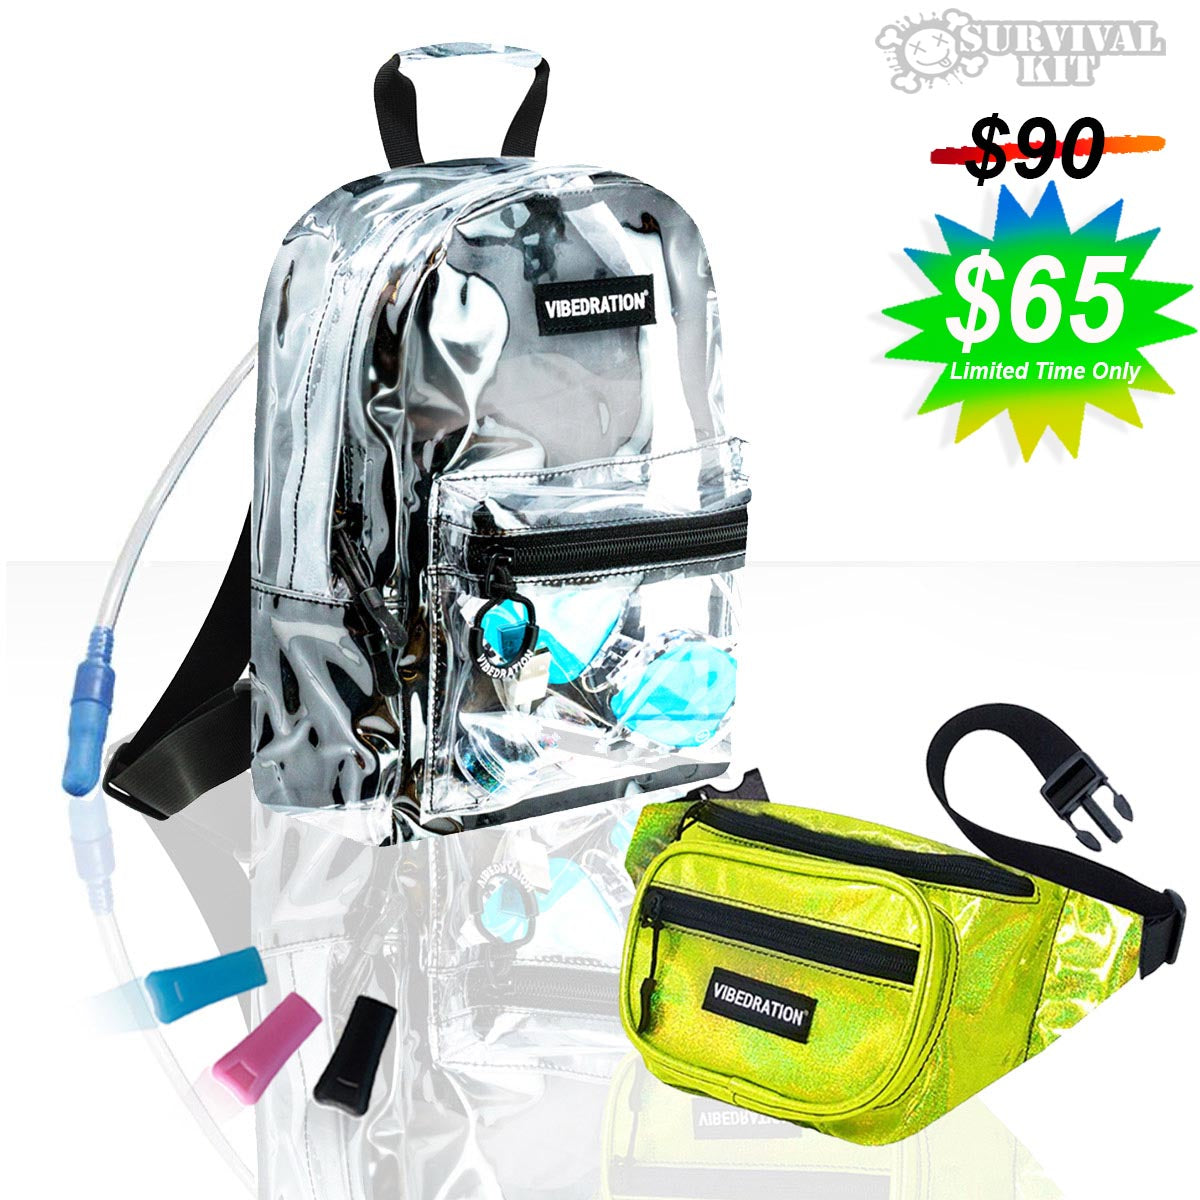 Festival Survival Kit includes Mini Hydration Pack and Fanny Pack